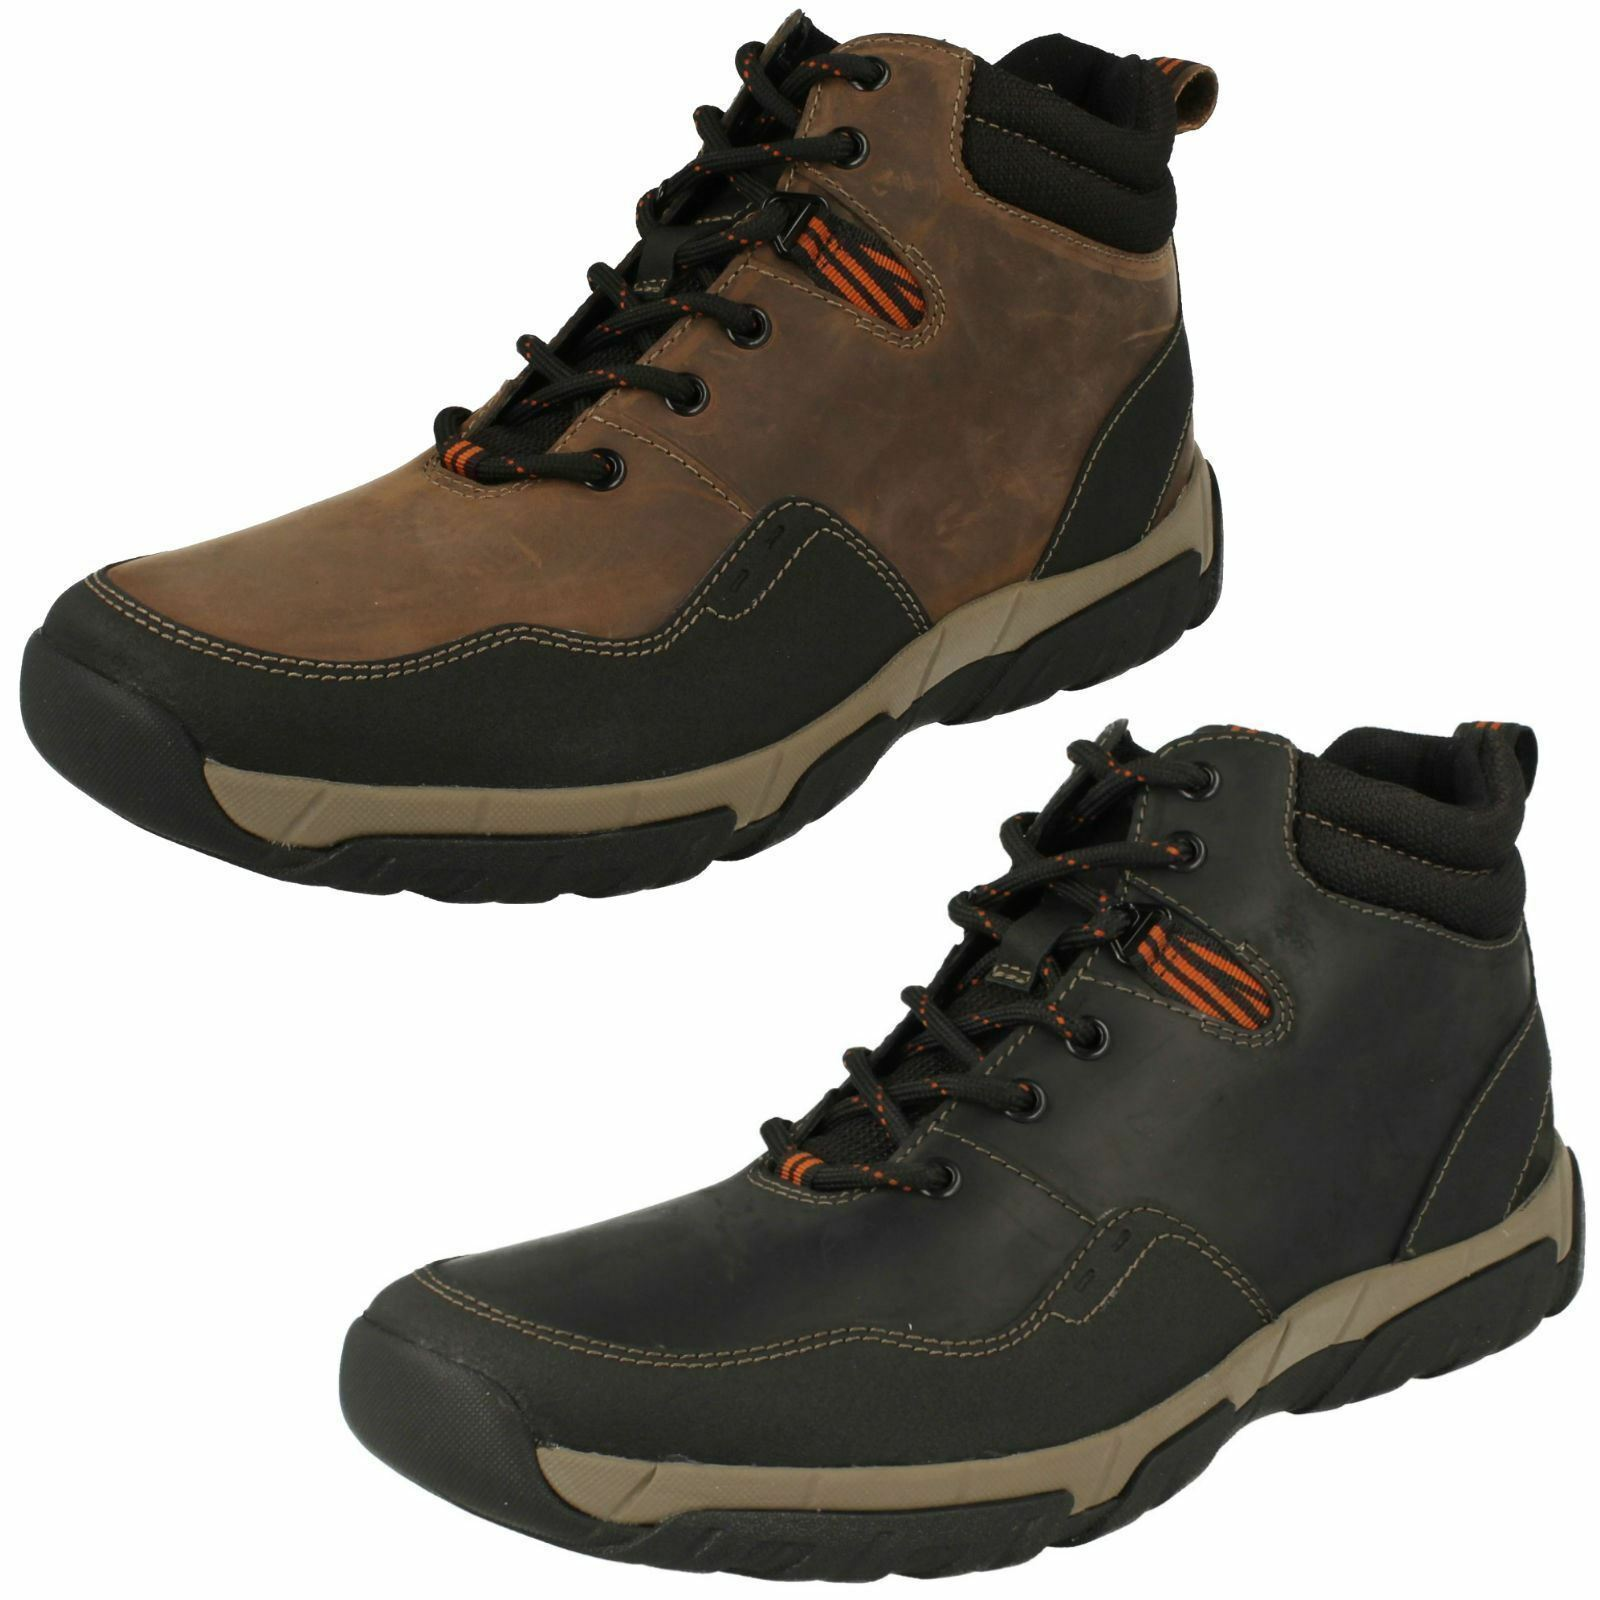 Herren CLARKS LEATHER Stiefel WALBECK IN 2 COLOURS STYLE WALBECK Stiefel TOP c998c4